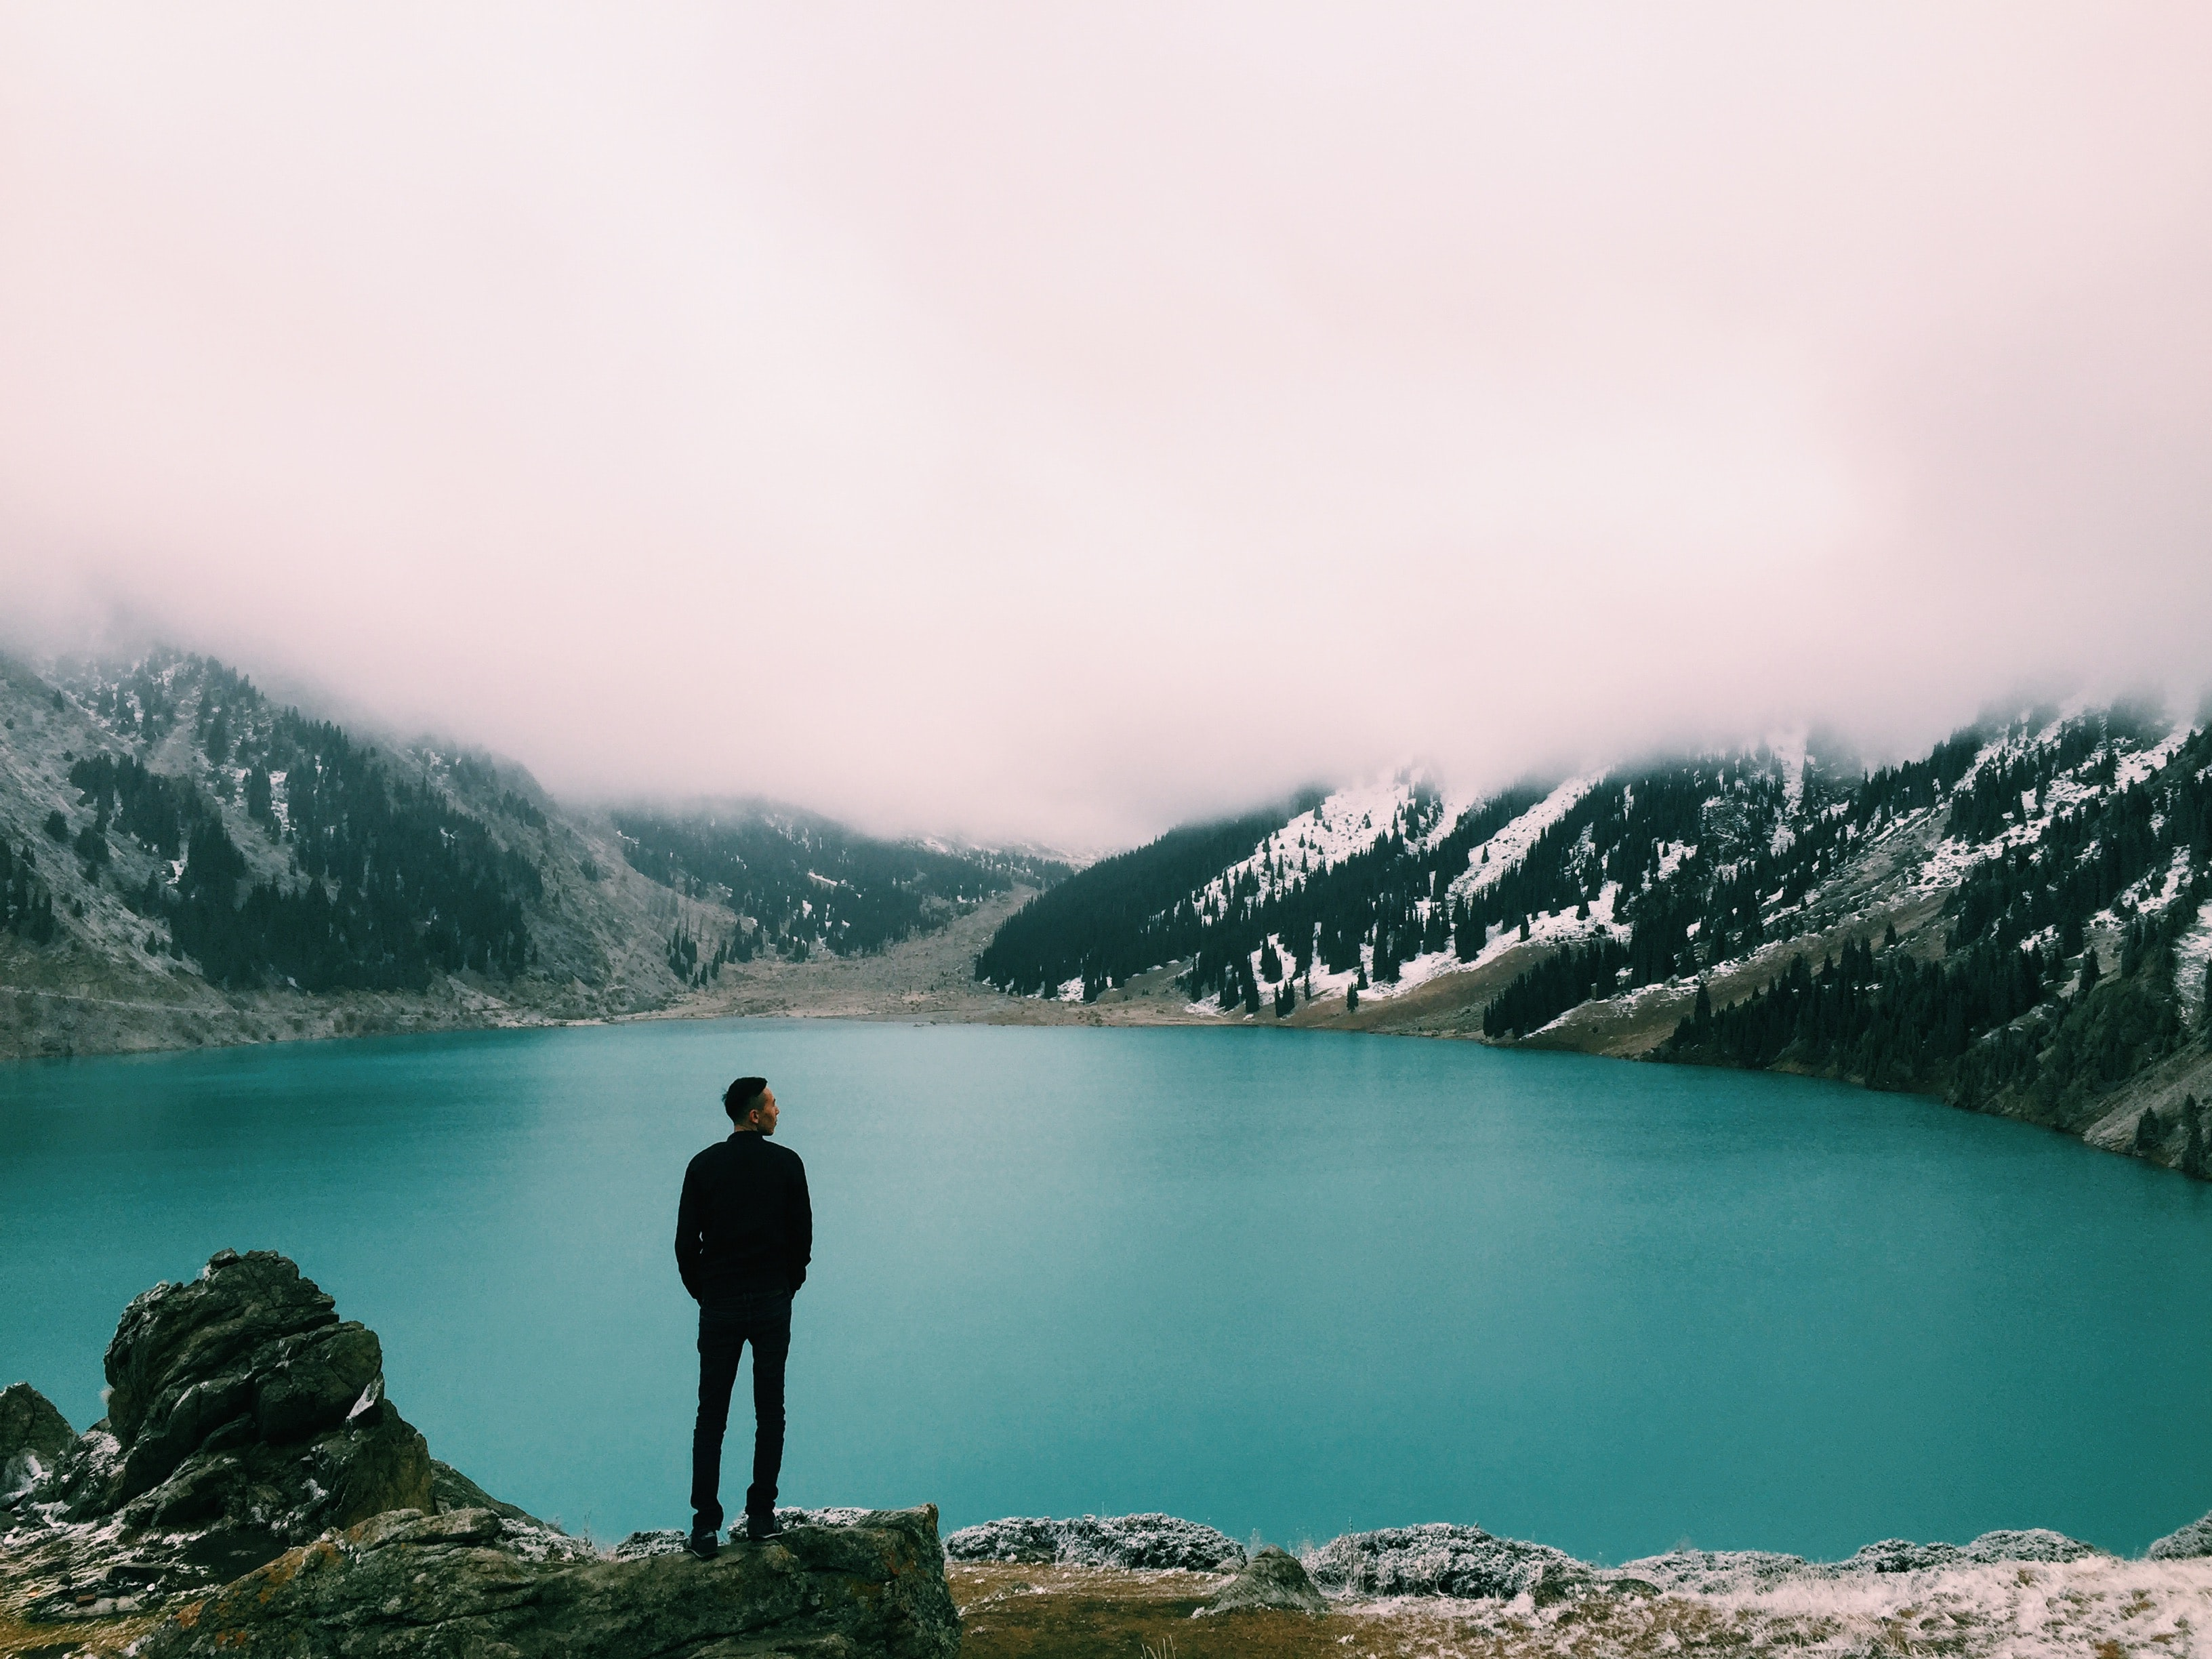 Man on a rocky ledge, looking at misty mountains and a lake, in winter, at Almaty